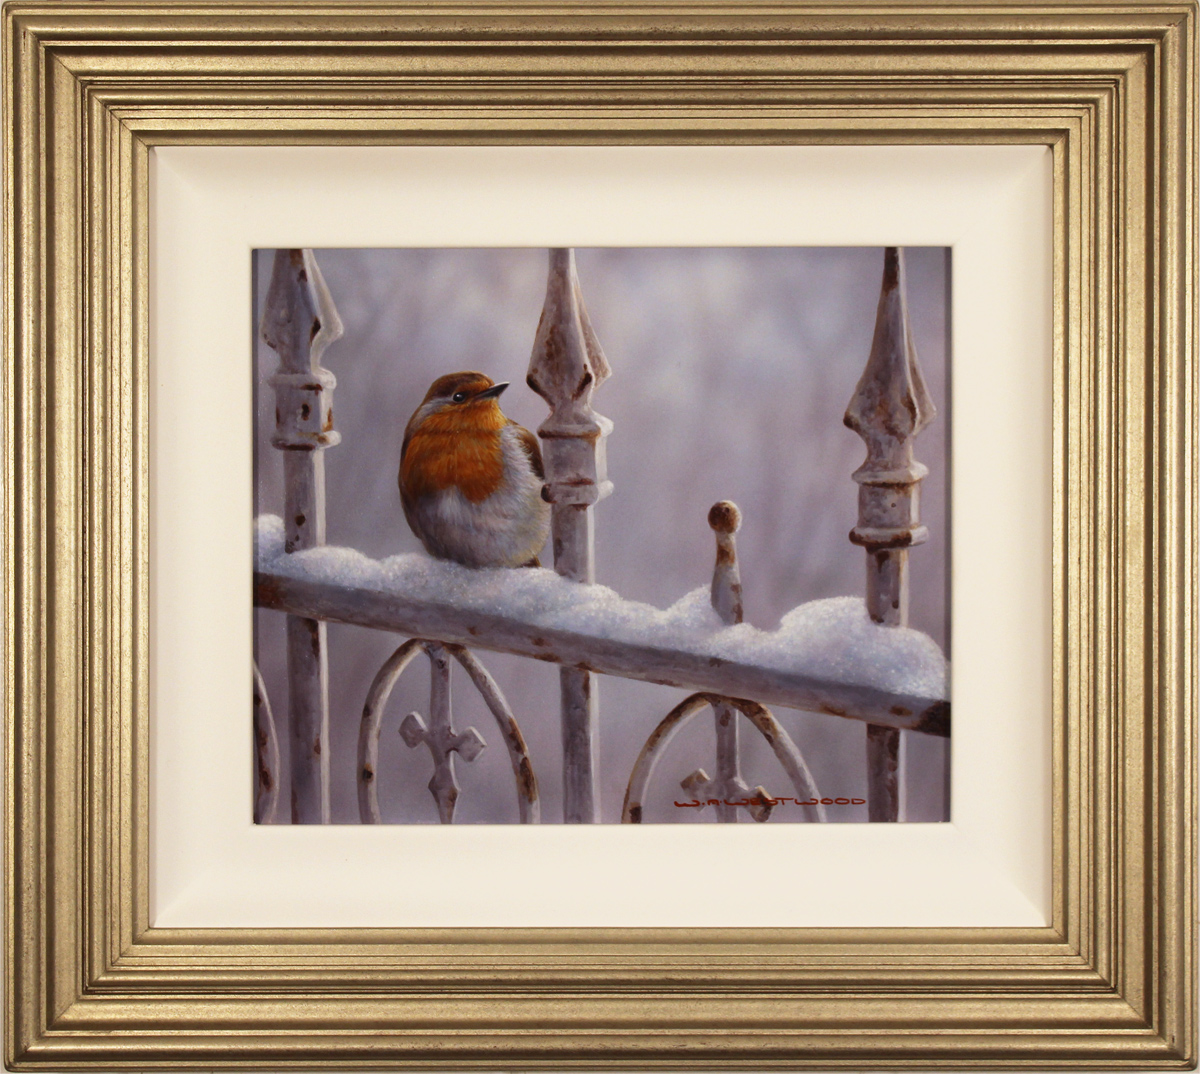 Wayne Westwood, Original oil painting on panel, Winter Robin, click to enlarge